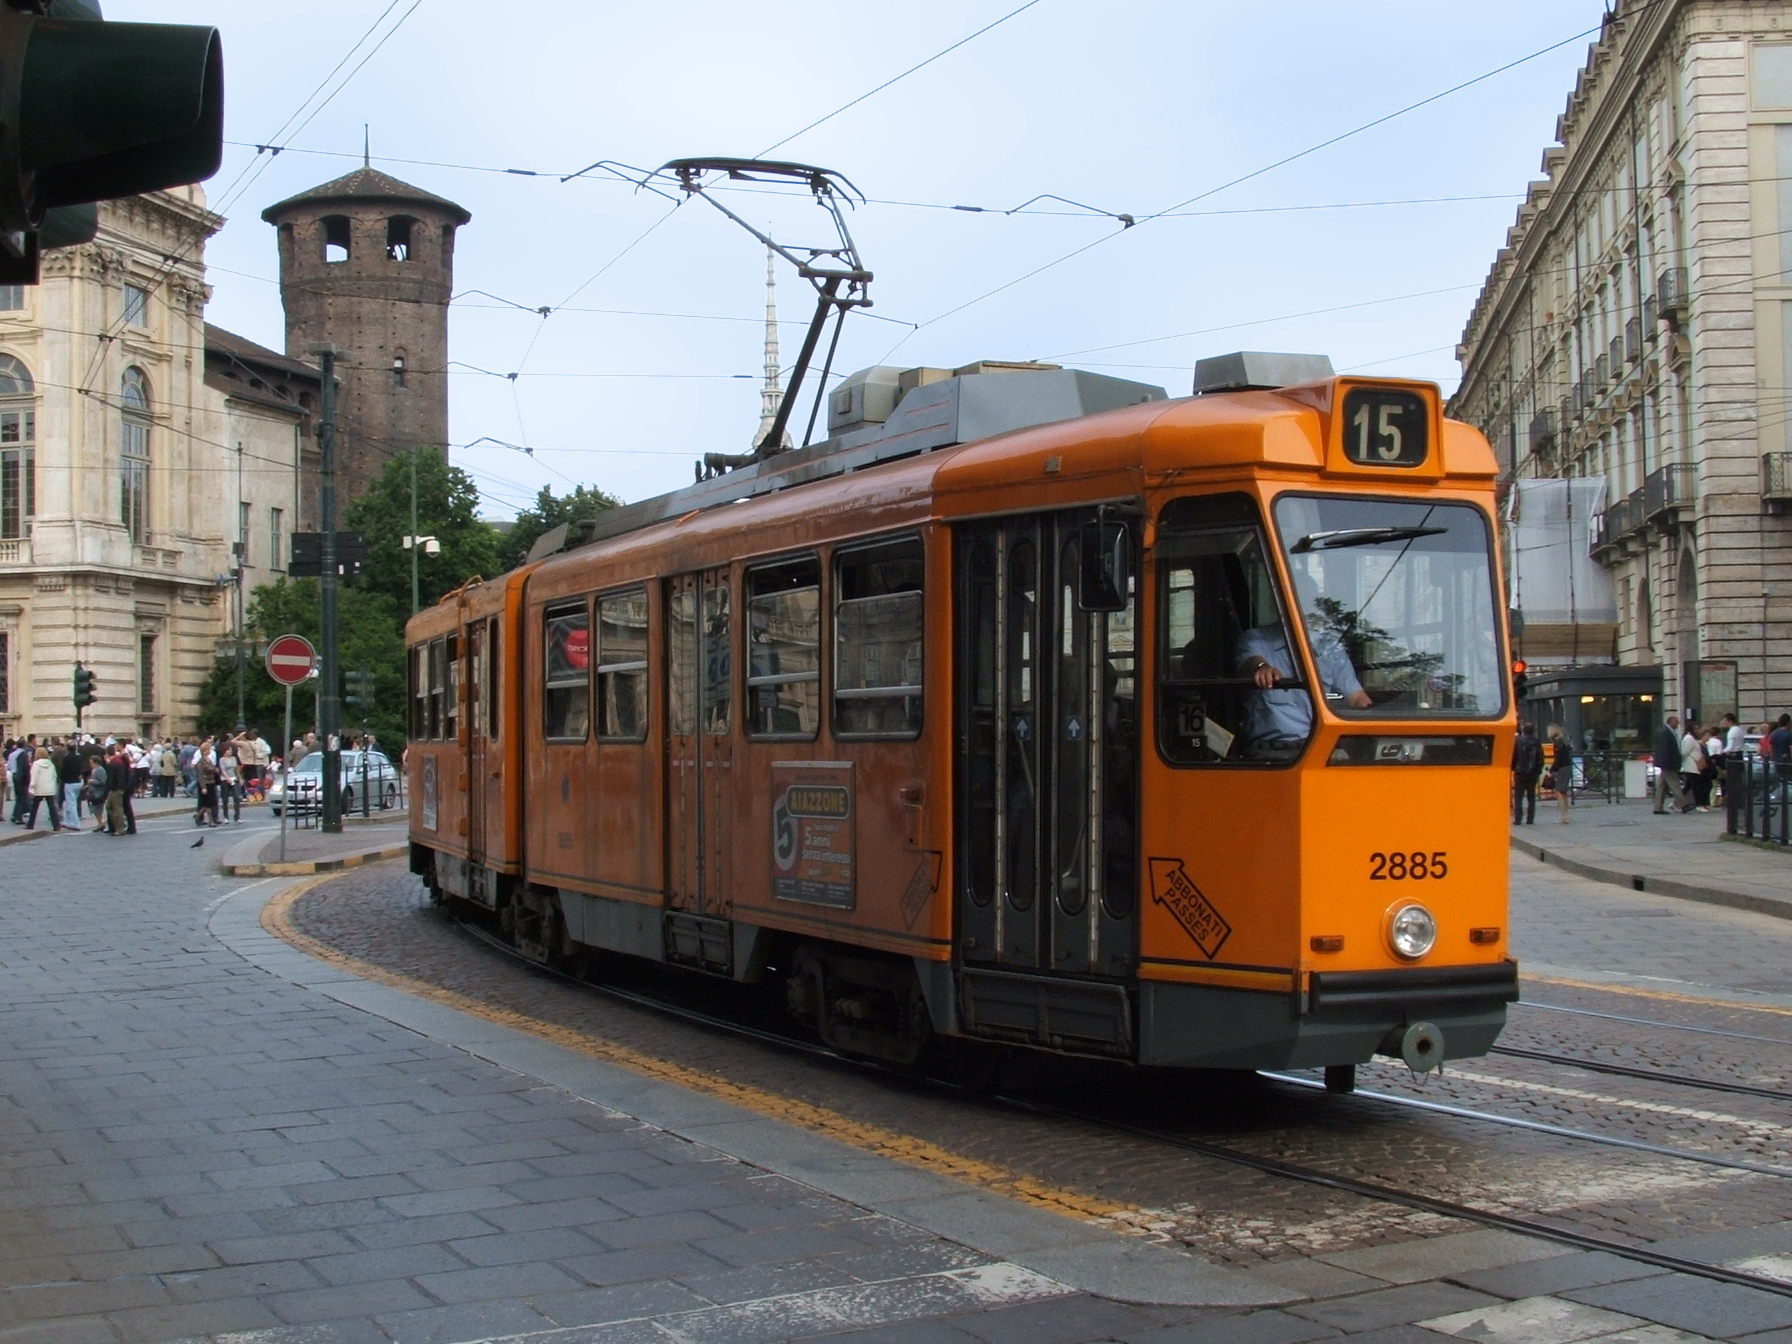 Tram High Quality Background on Wallpapers Vista